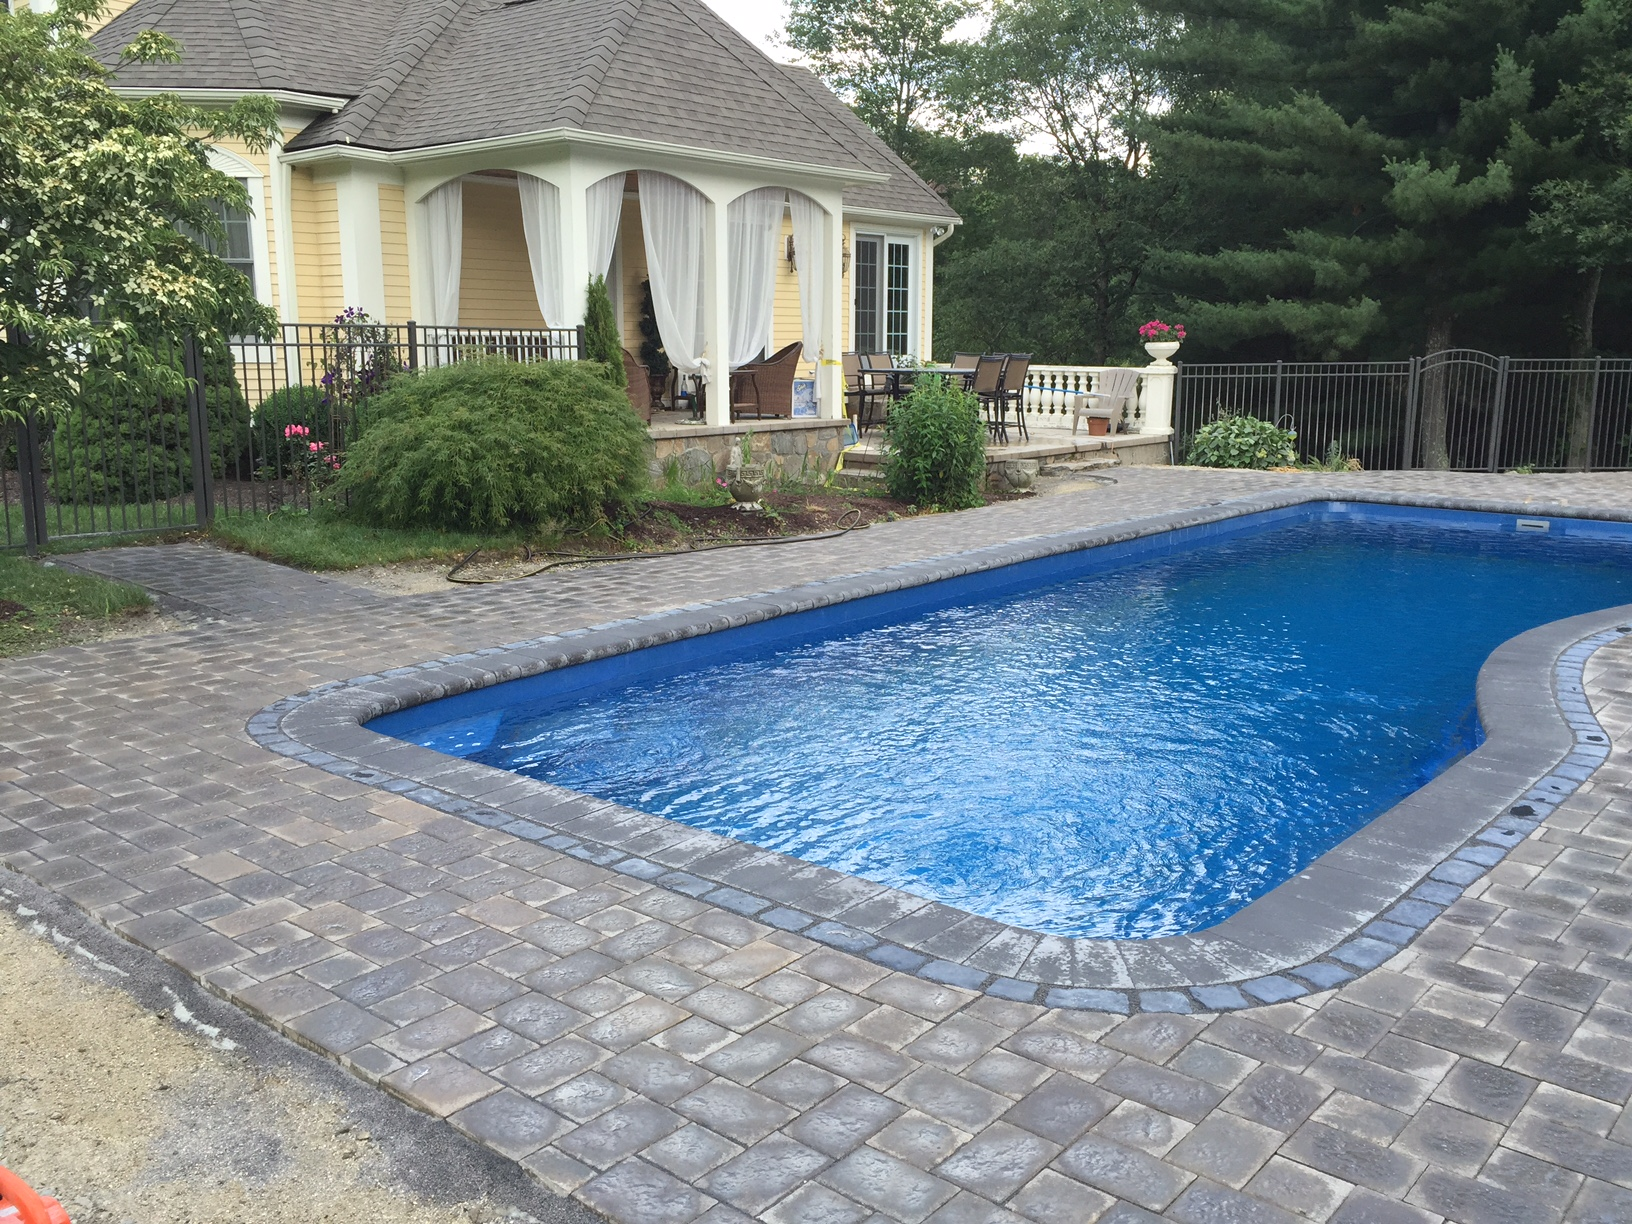 Smithfield, RI Fiberglass Pool And Patio